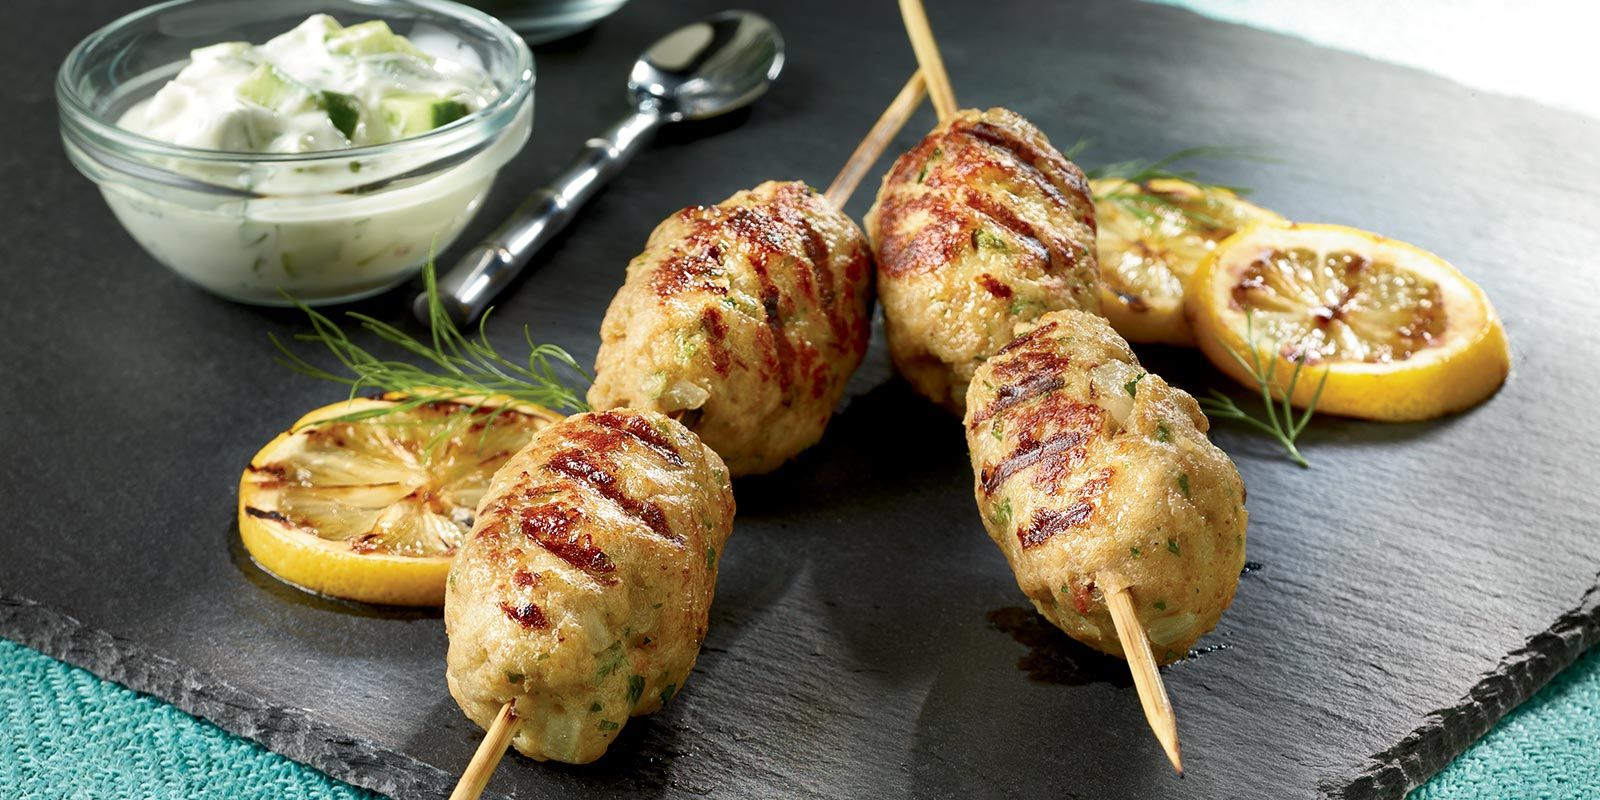 <p>These healthy grilled chicken kabobs are a great source of lean protein, and organic means no antibiotics, toxic pesticides or synthetic hormones too!</p>